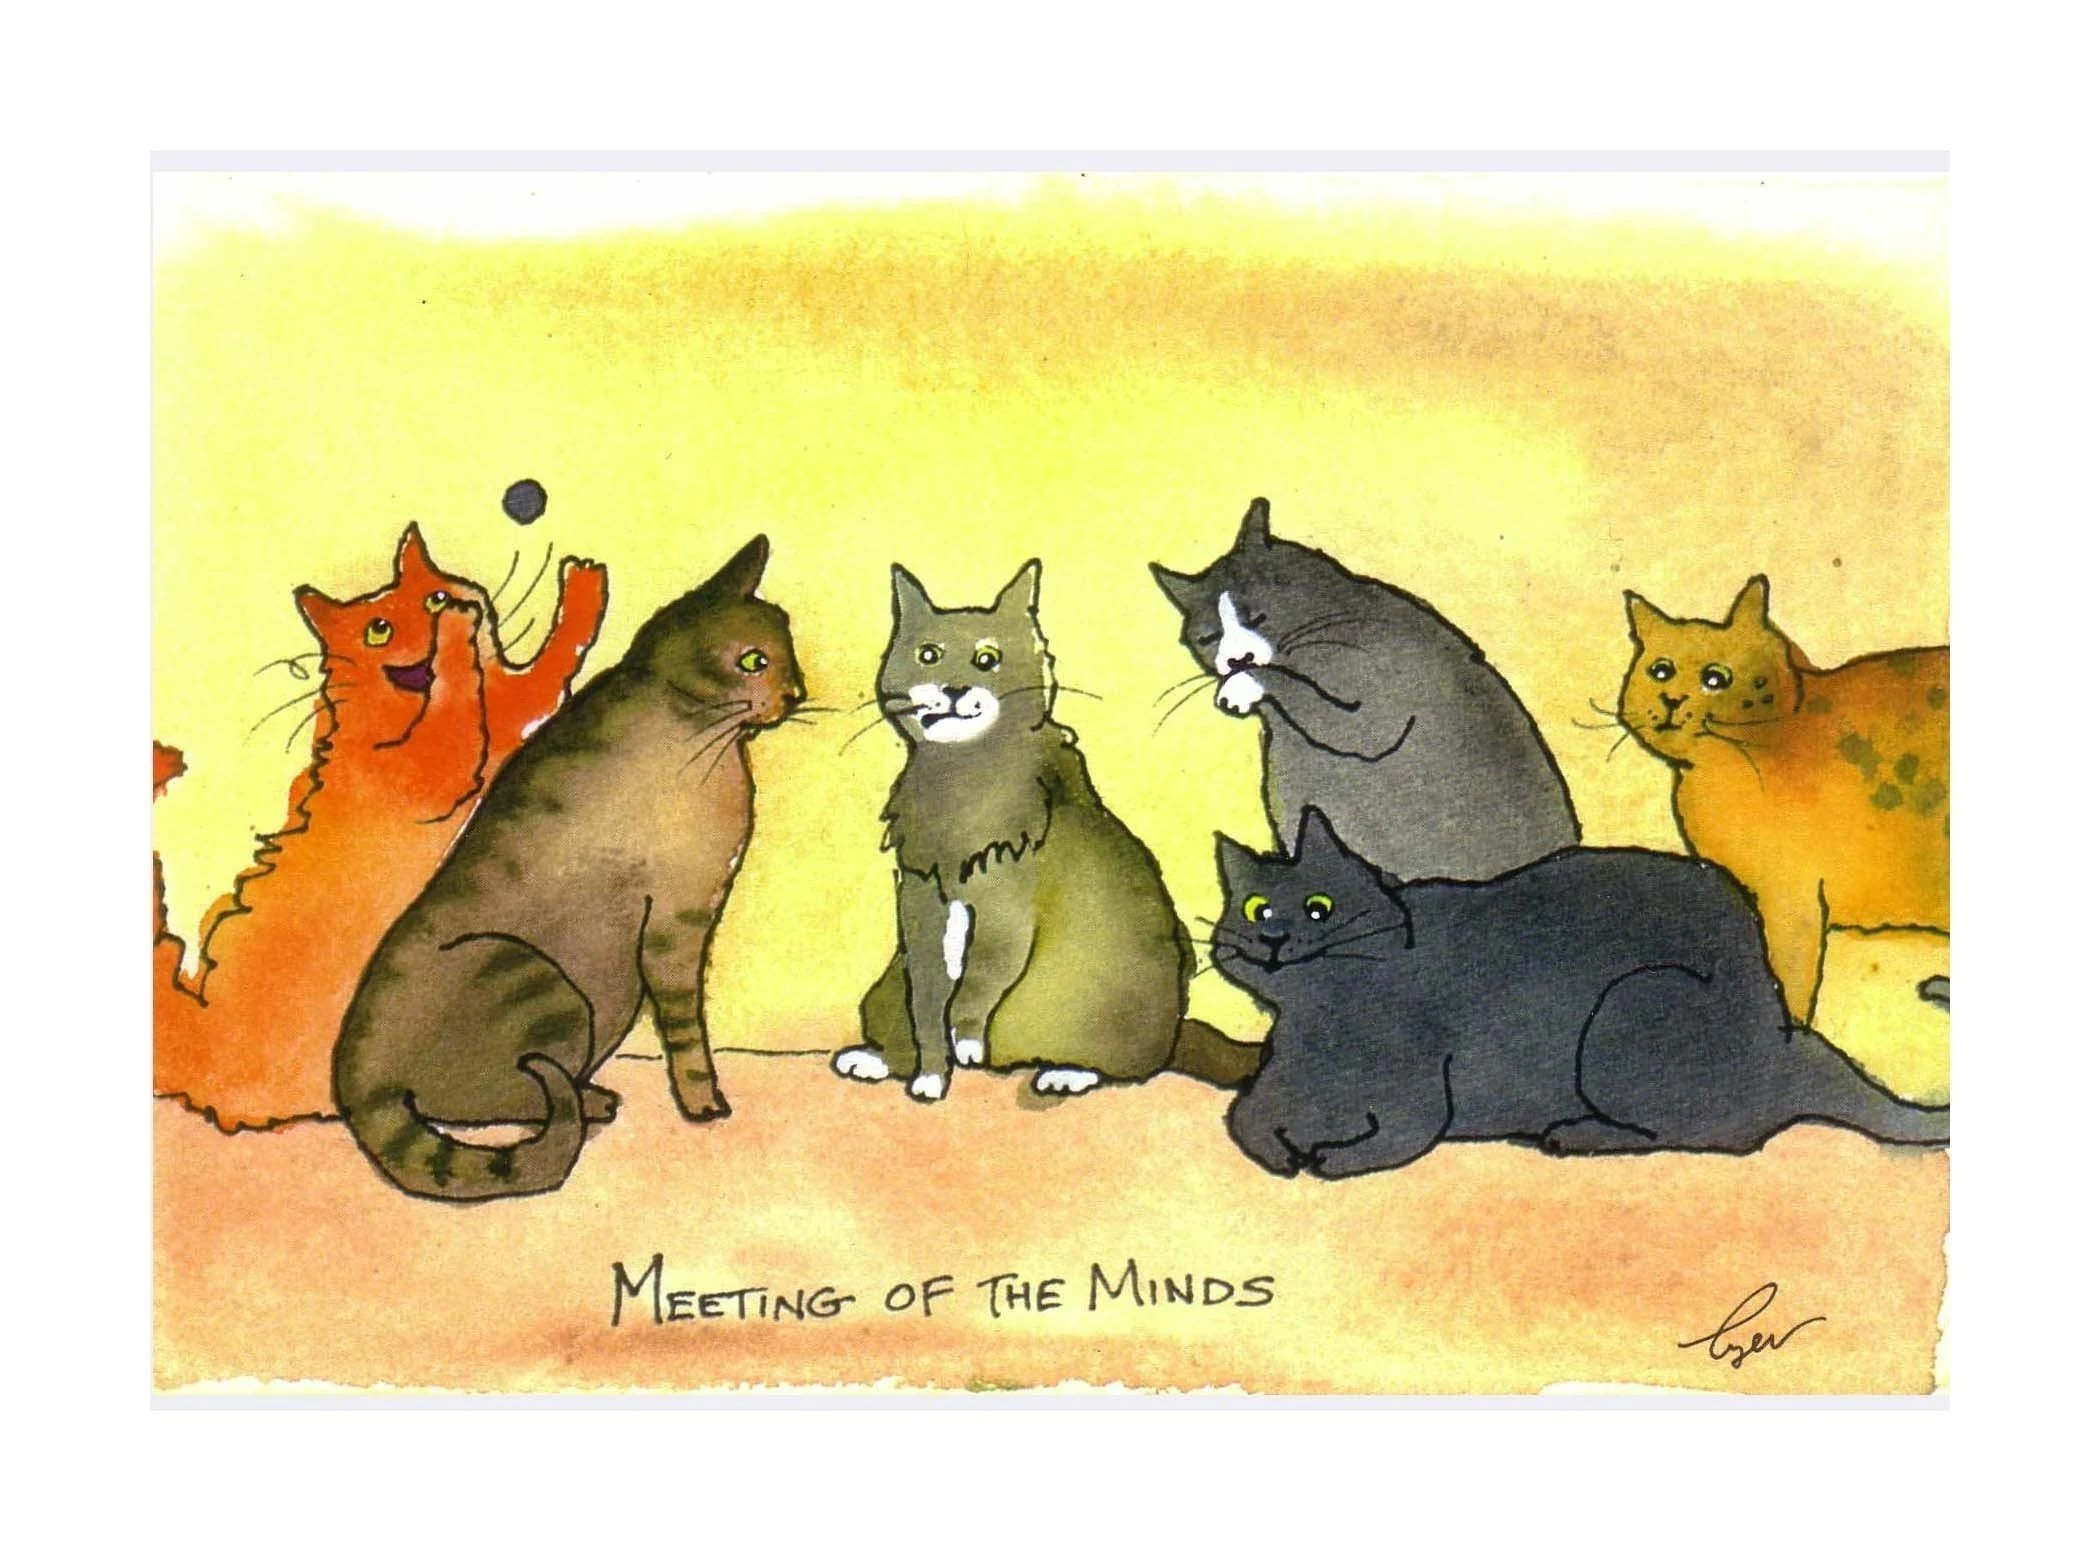 Funny Cat Watercolor Card Print Meeting Of The Minds